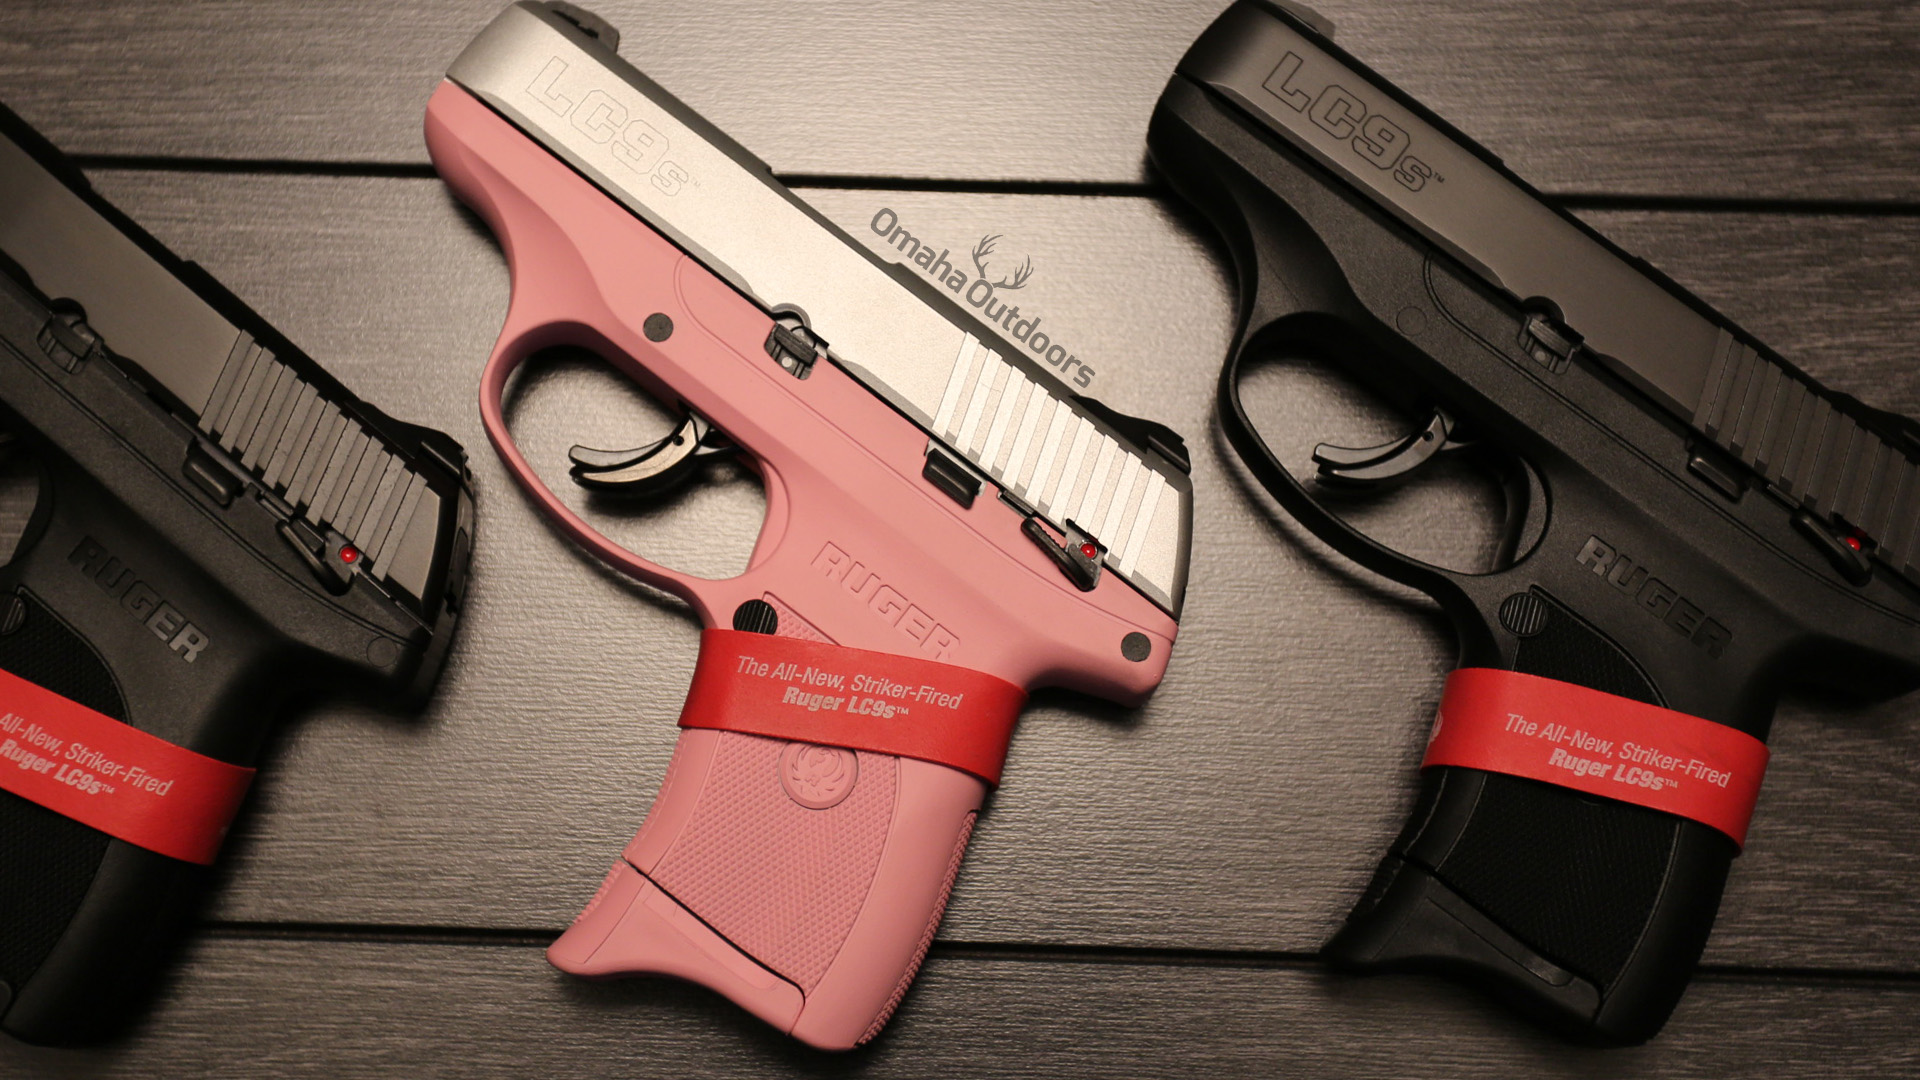 ruger-lc9s-1920x1080-1